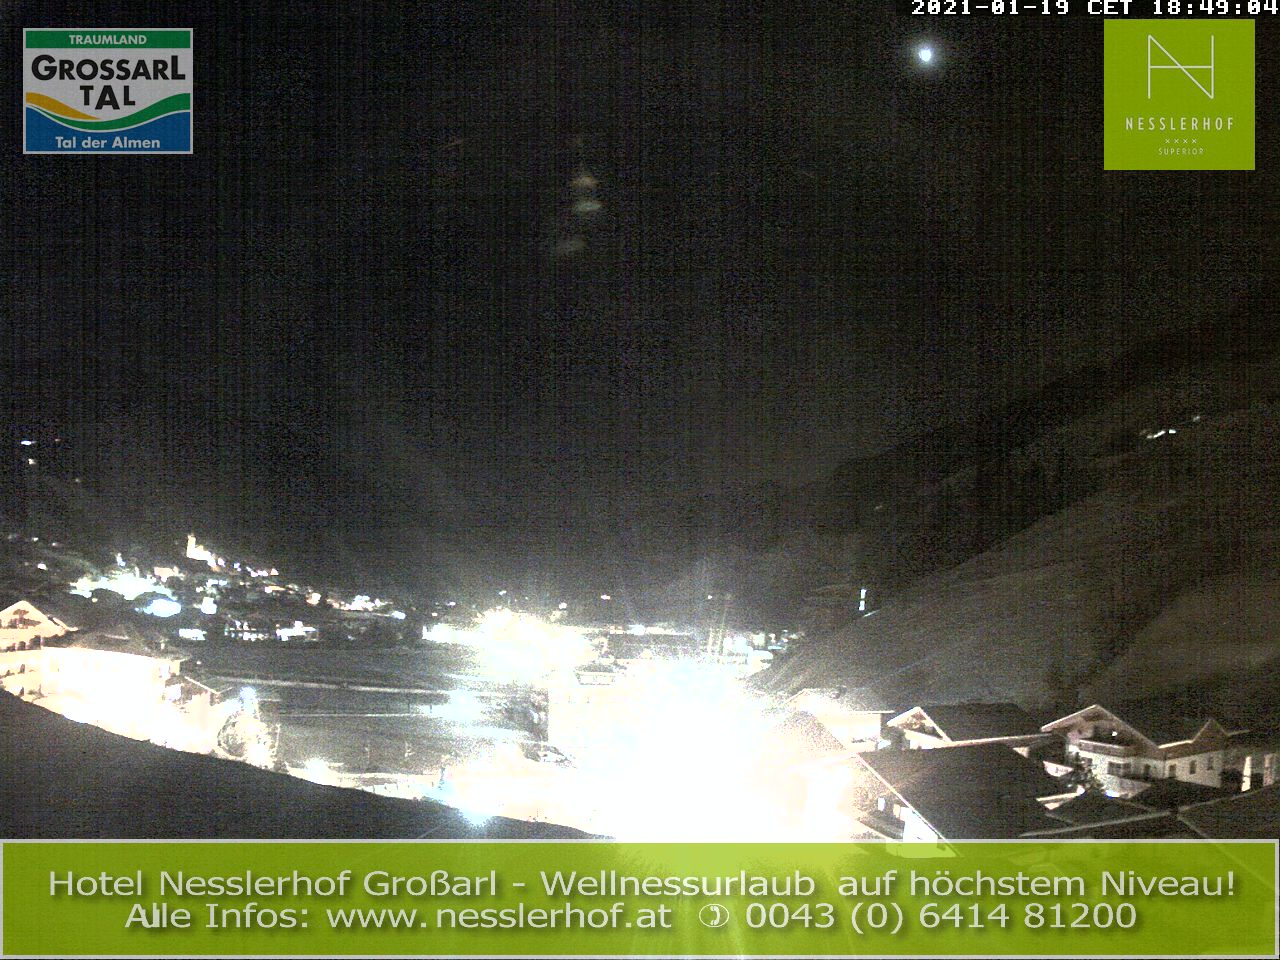 Grossarl webcam - bottom ski station Hohcbrand